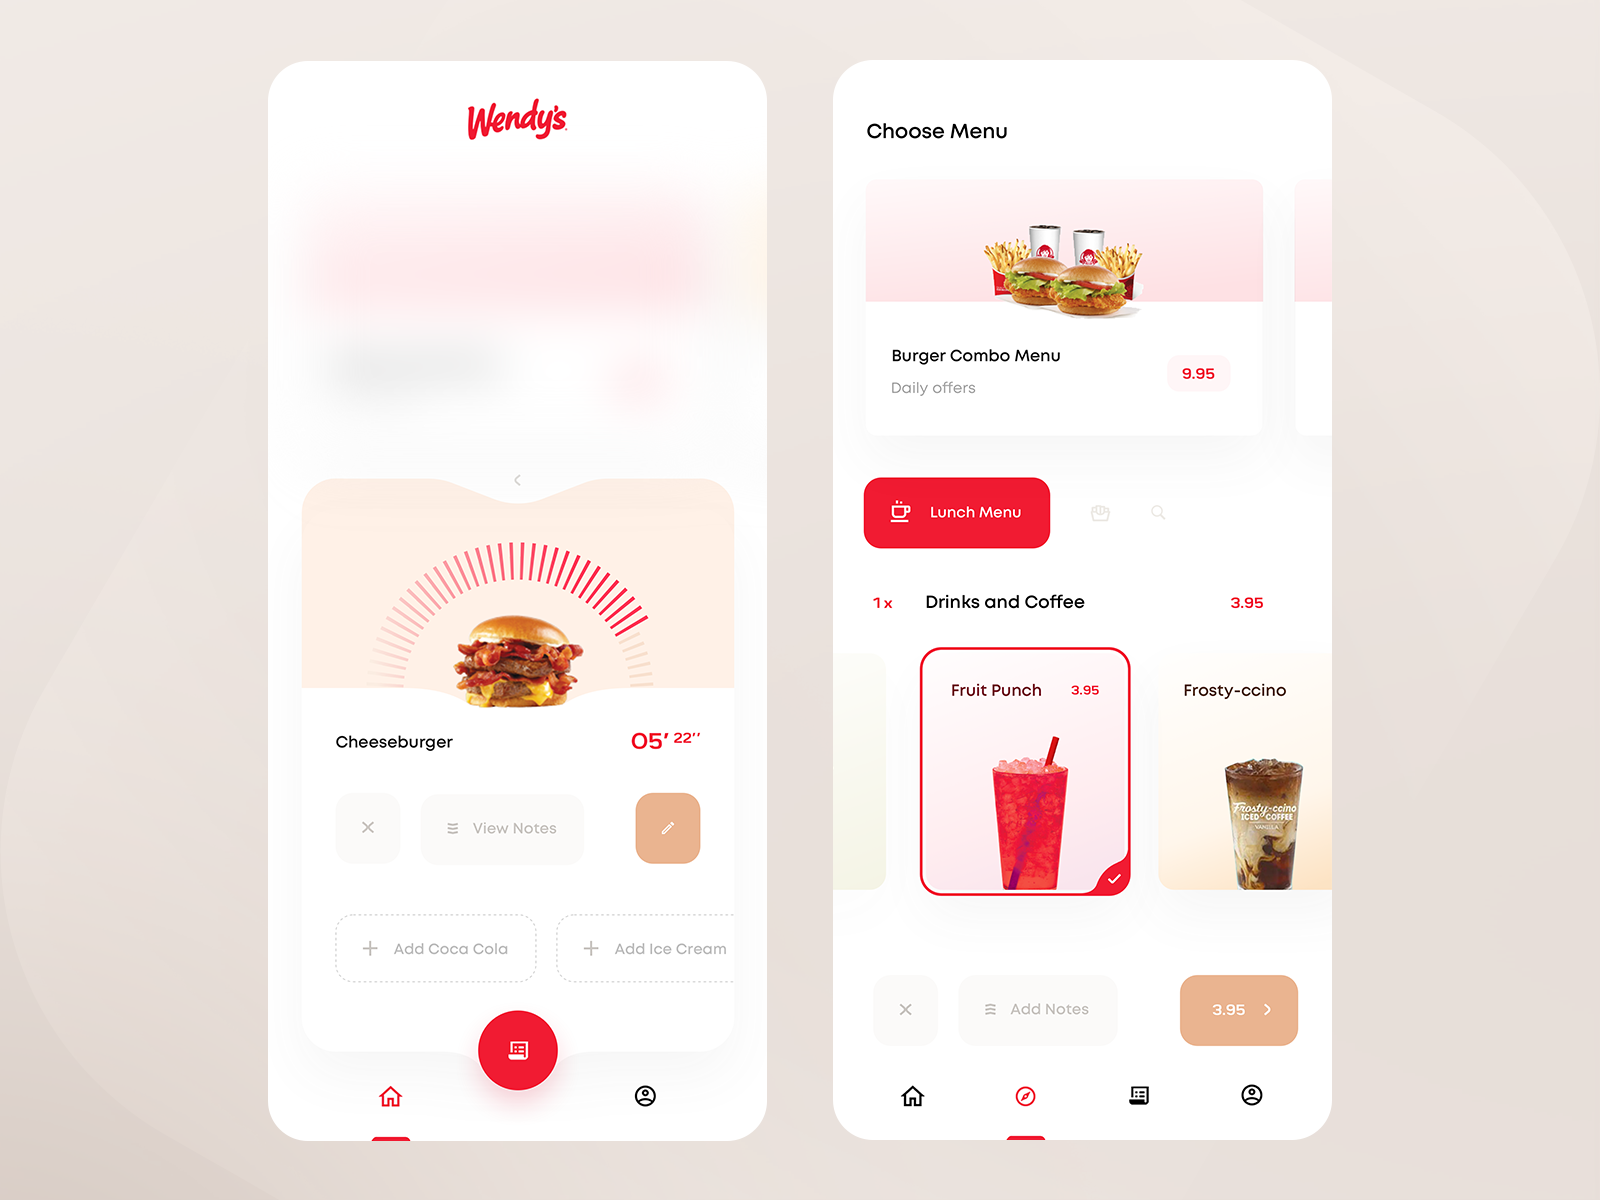 Wendy's Kiosk App — Status Check & Order in 2020 User